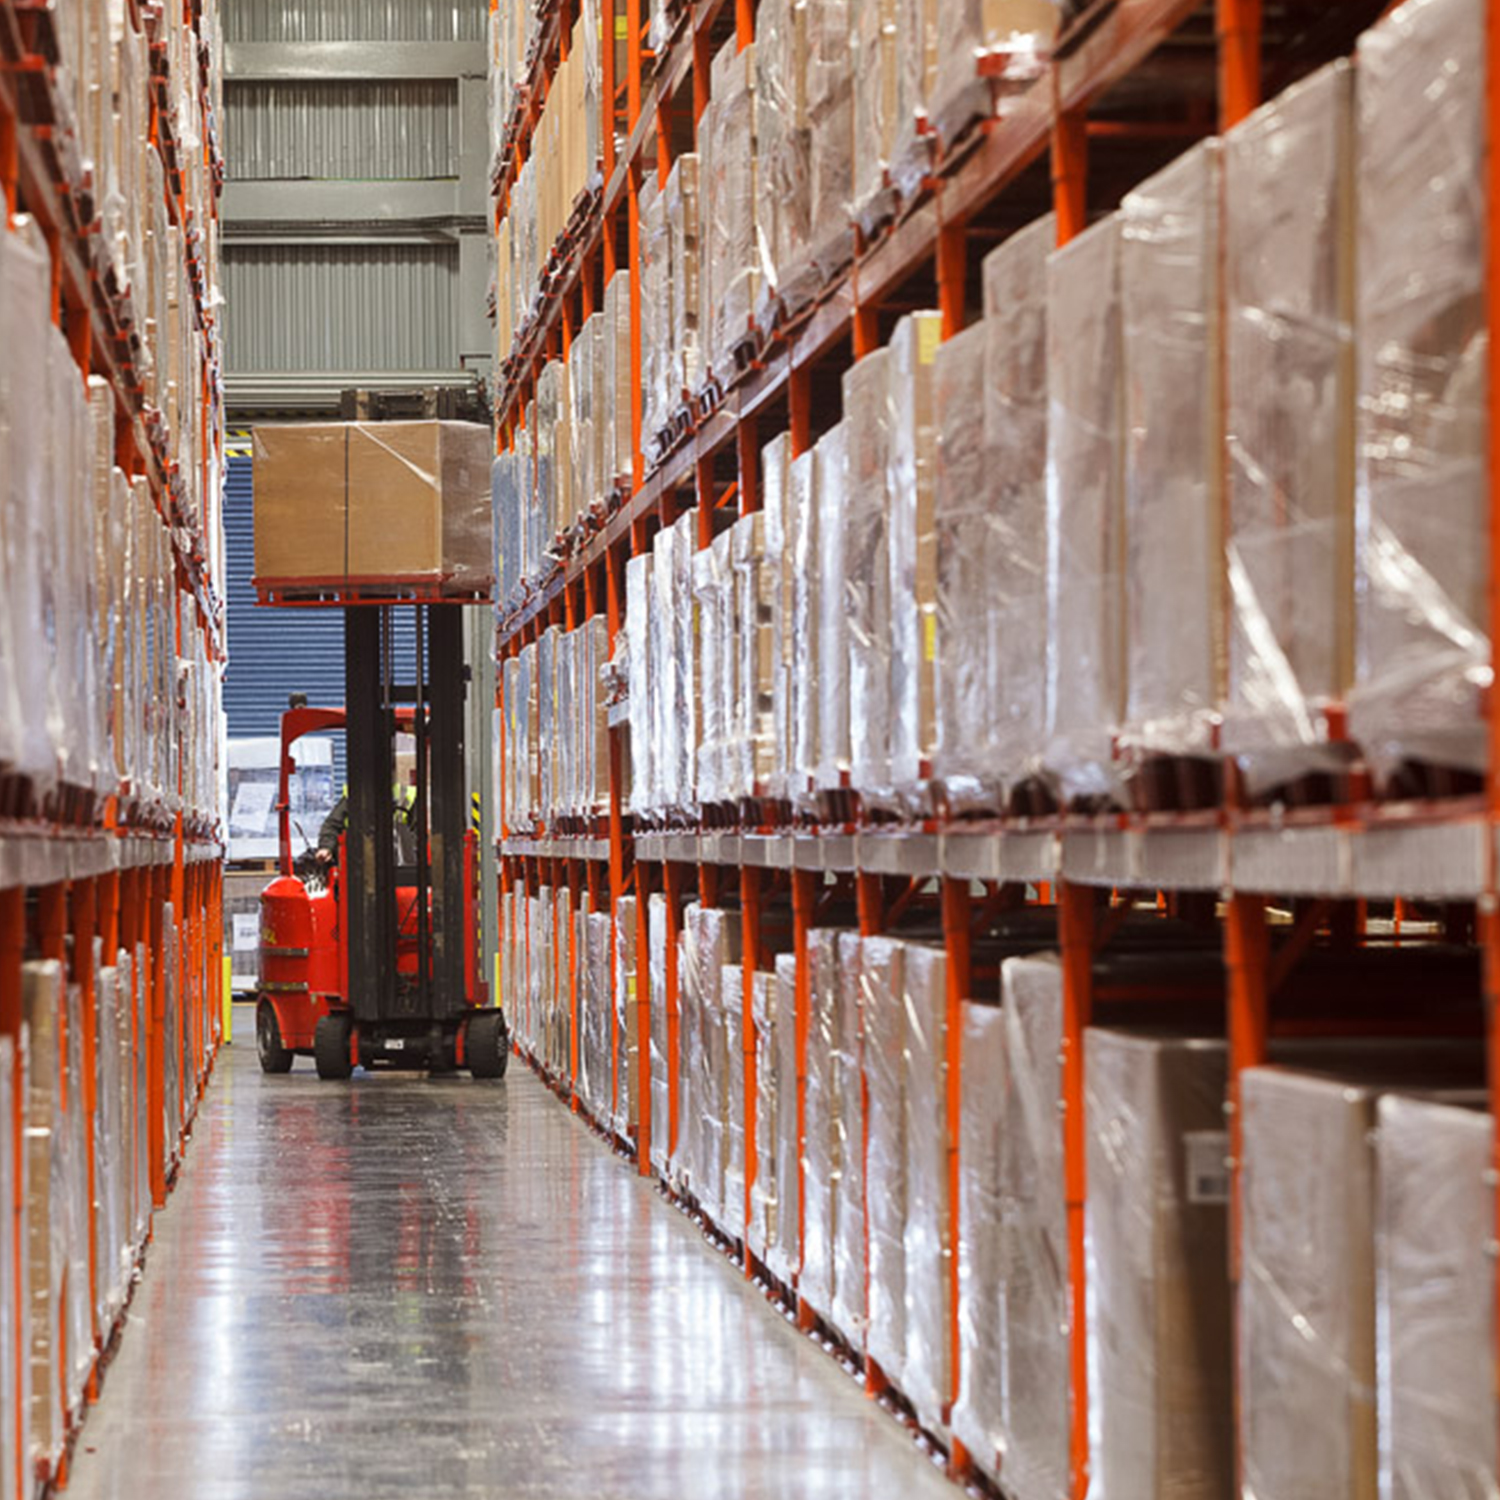 Warehousing & Supply Chains - Our facilities are ambient temperature-controlled, highly secure, and designed to facilitate the specific requirements our clients need. Our team is equipped to oversee every stage of the supply chain and each third-party relationship.